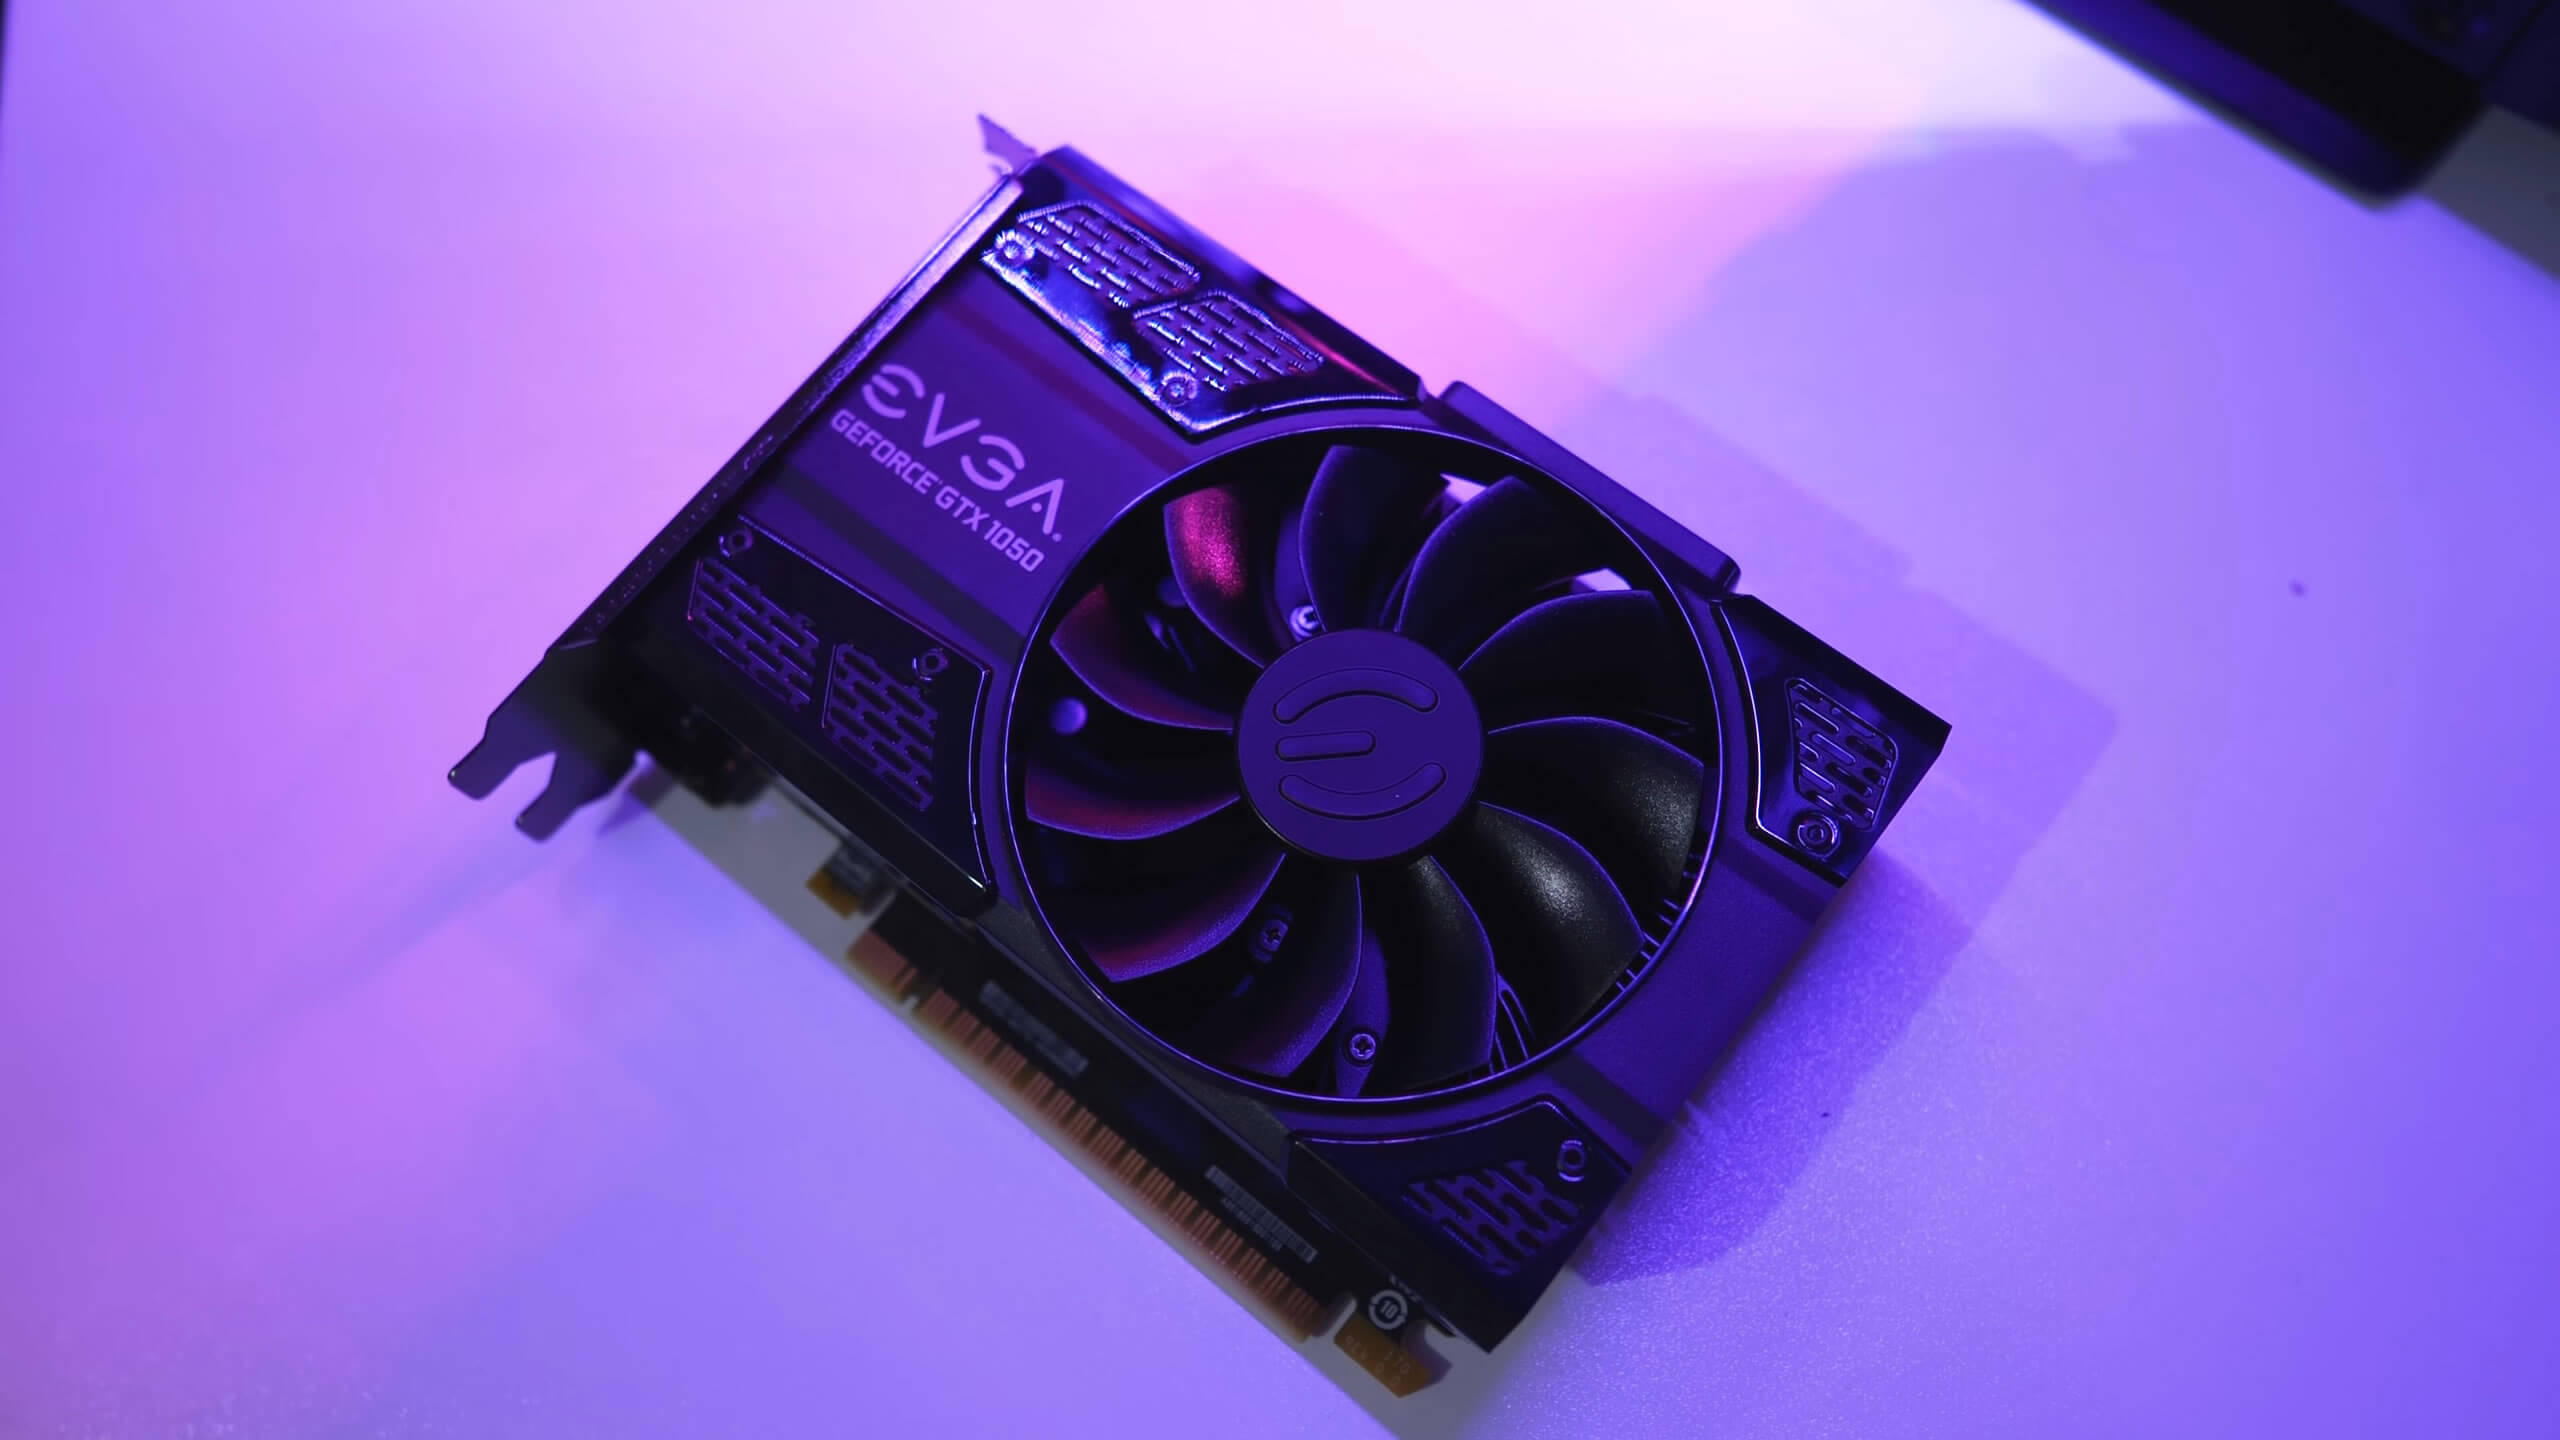 The New 3GB GeForce GTX 1050: Good Product or Misleading